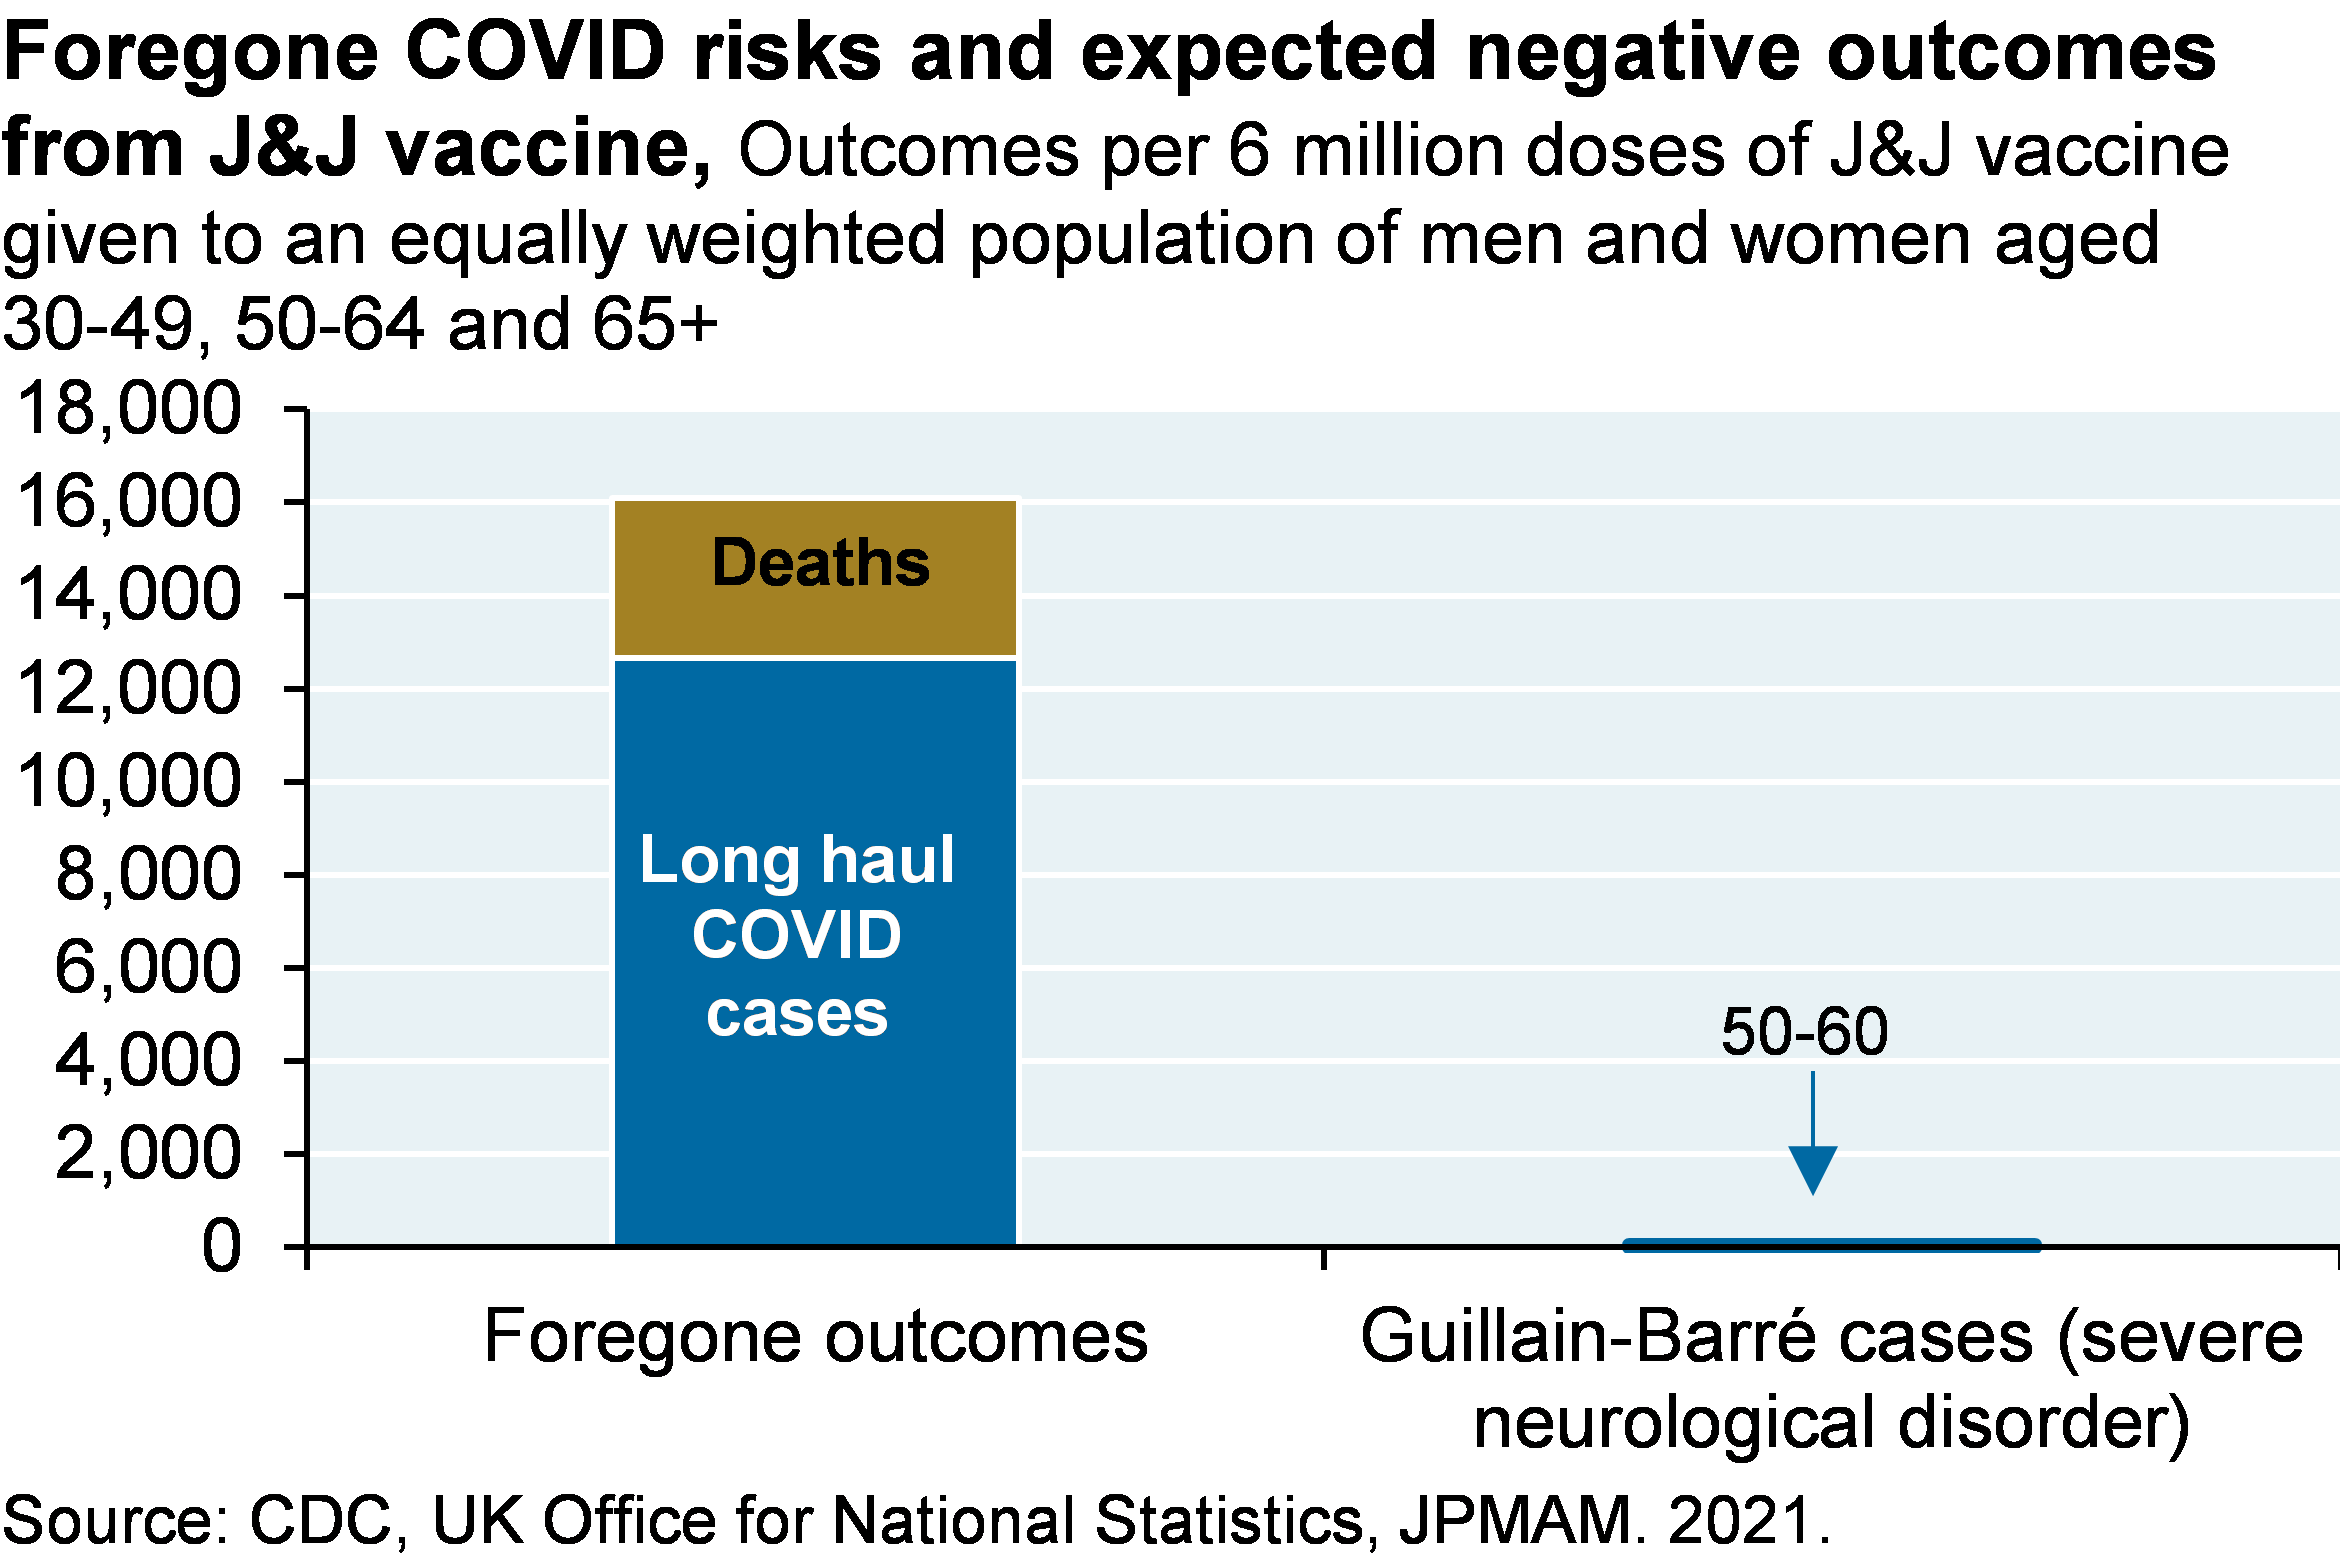 Bar chart shows foregone outcomes, including about 12,000 long haul COVID cases and about 4,000 deaths, per 6 million doses of J&J vaccines administered, compared to the 50-60 cases of Guillain-Barré, a severe neurological disorder.